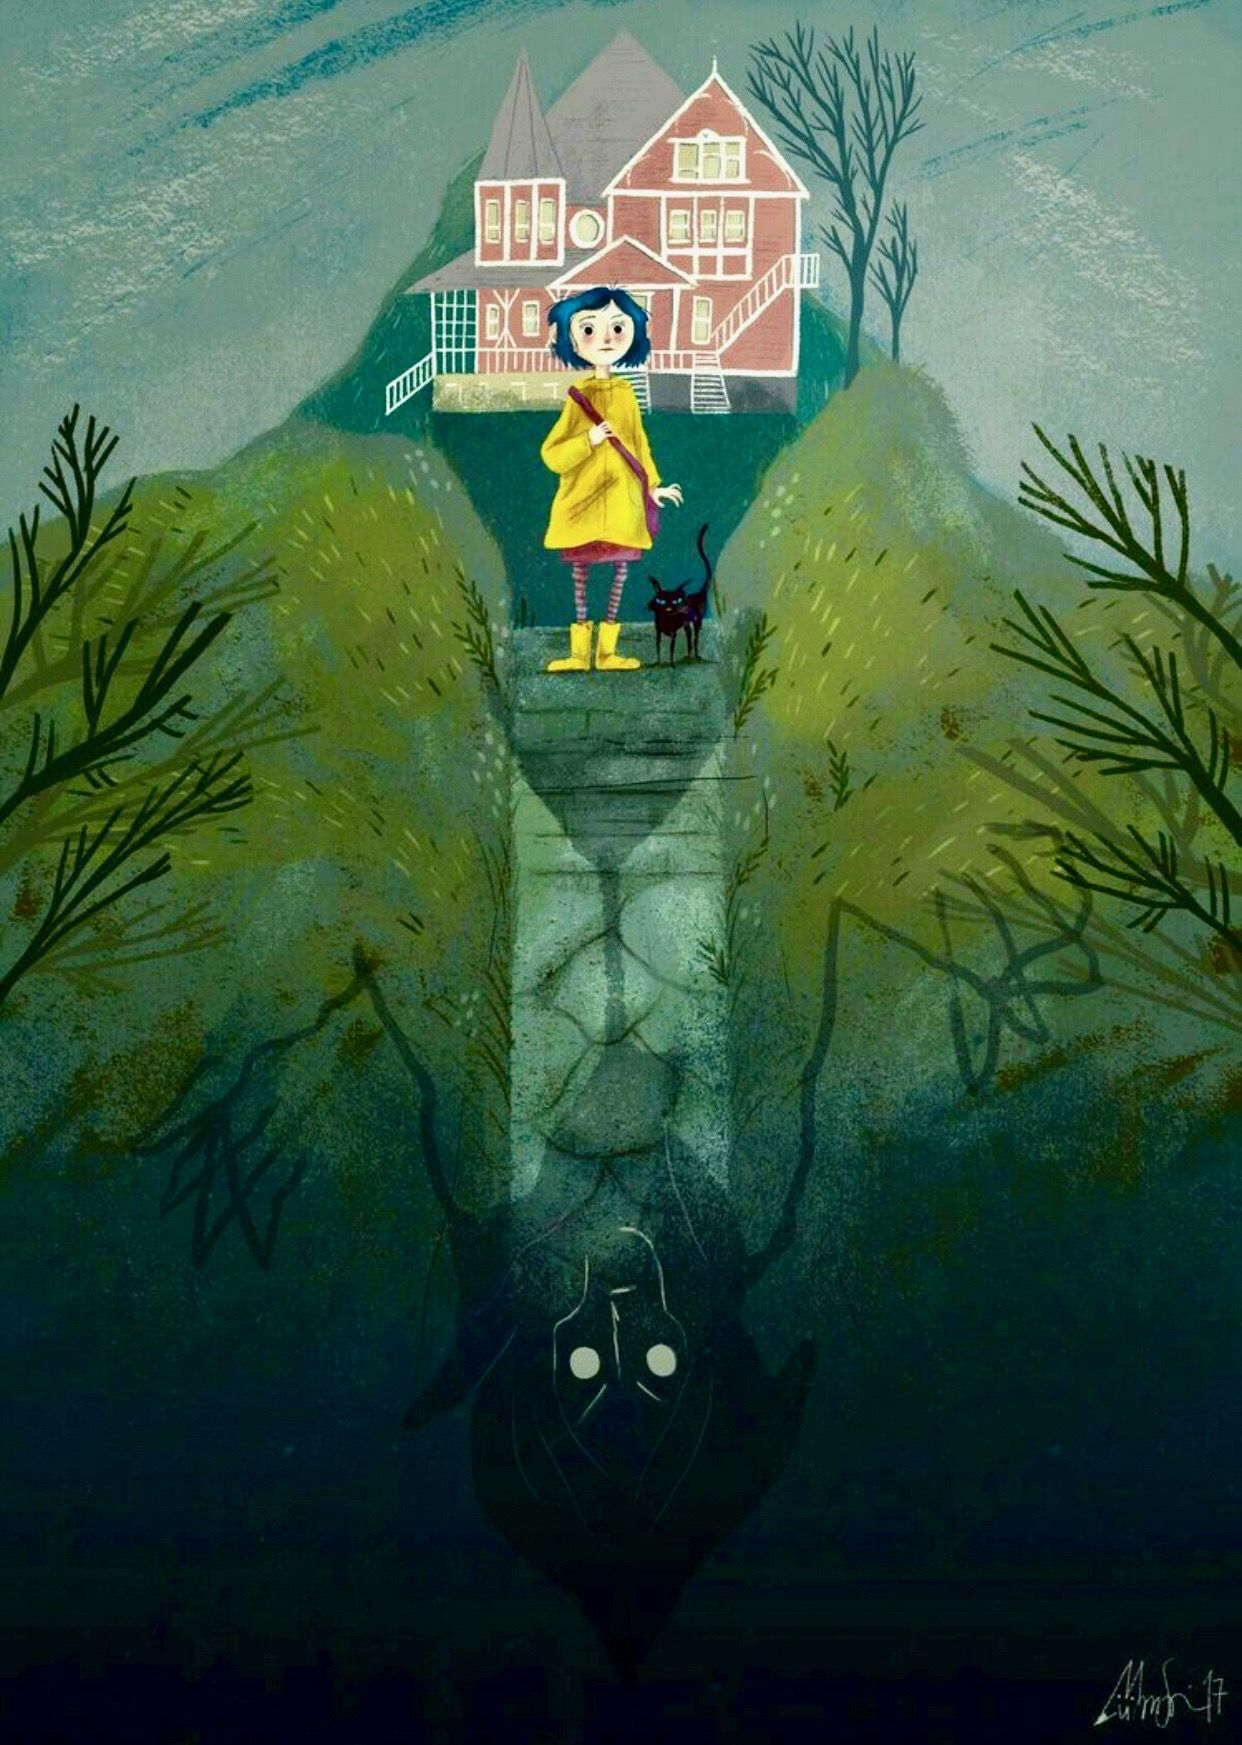 Pin By Book Lover 3 On Cartoons Of My Heart Coraline Art Coraline Coraline Aesthetic